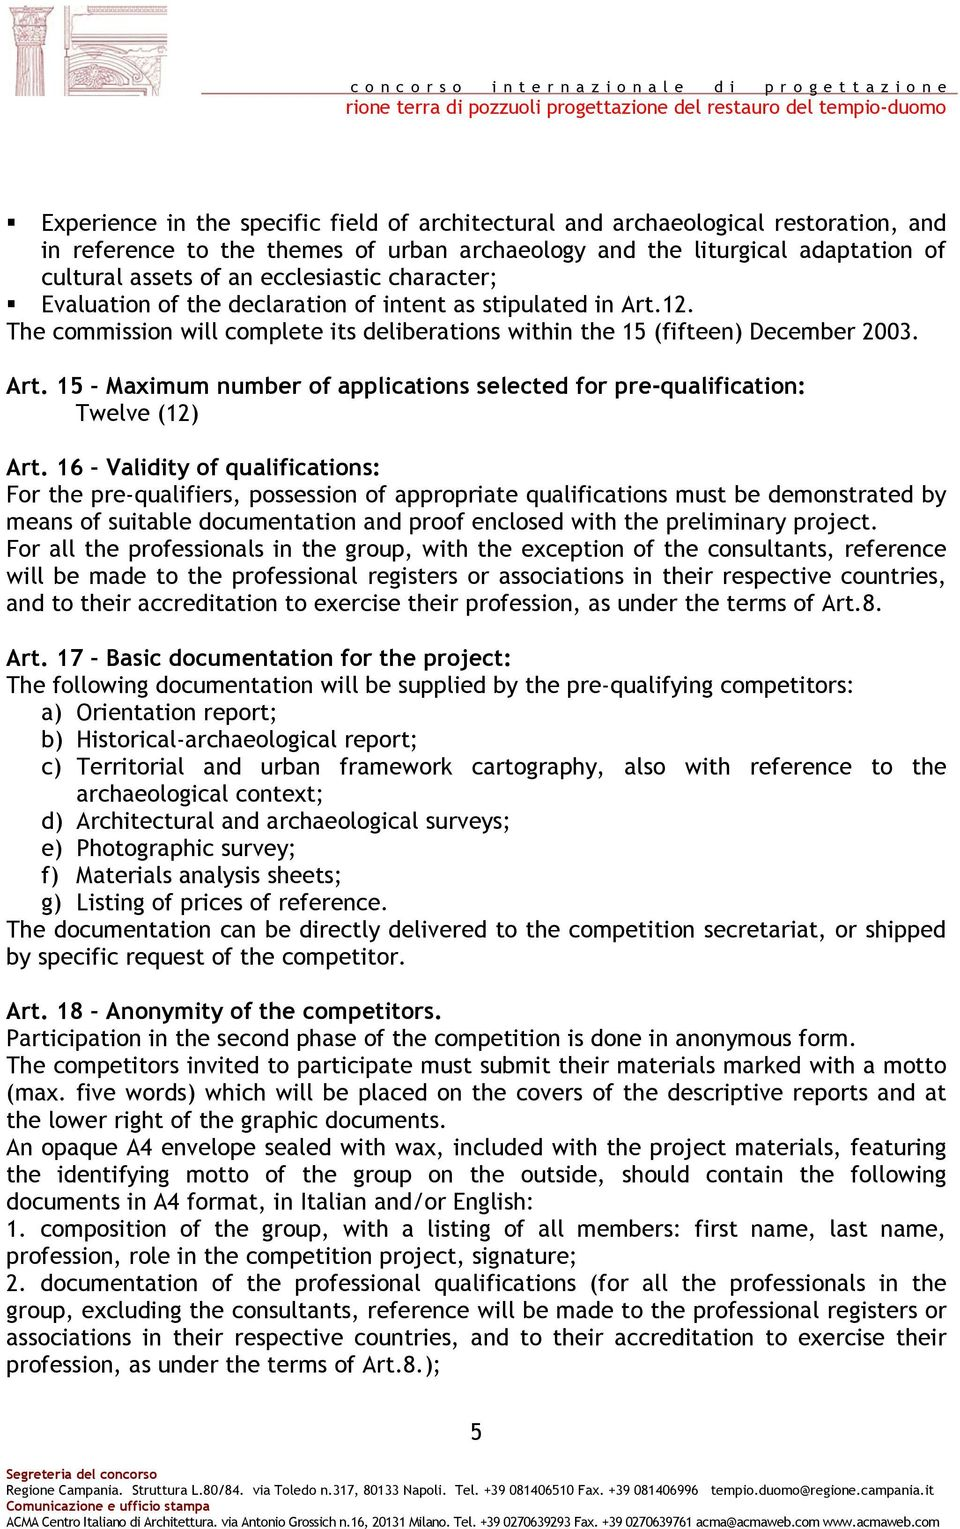 16 Validity of qualifications: For the pre-qualifiers, possession of appropriate qualifications must be demonstrated by means of suitable documentation and proof enclosed with the preliminary project.